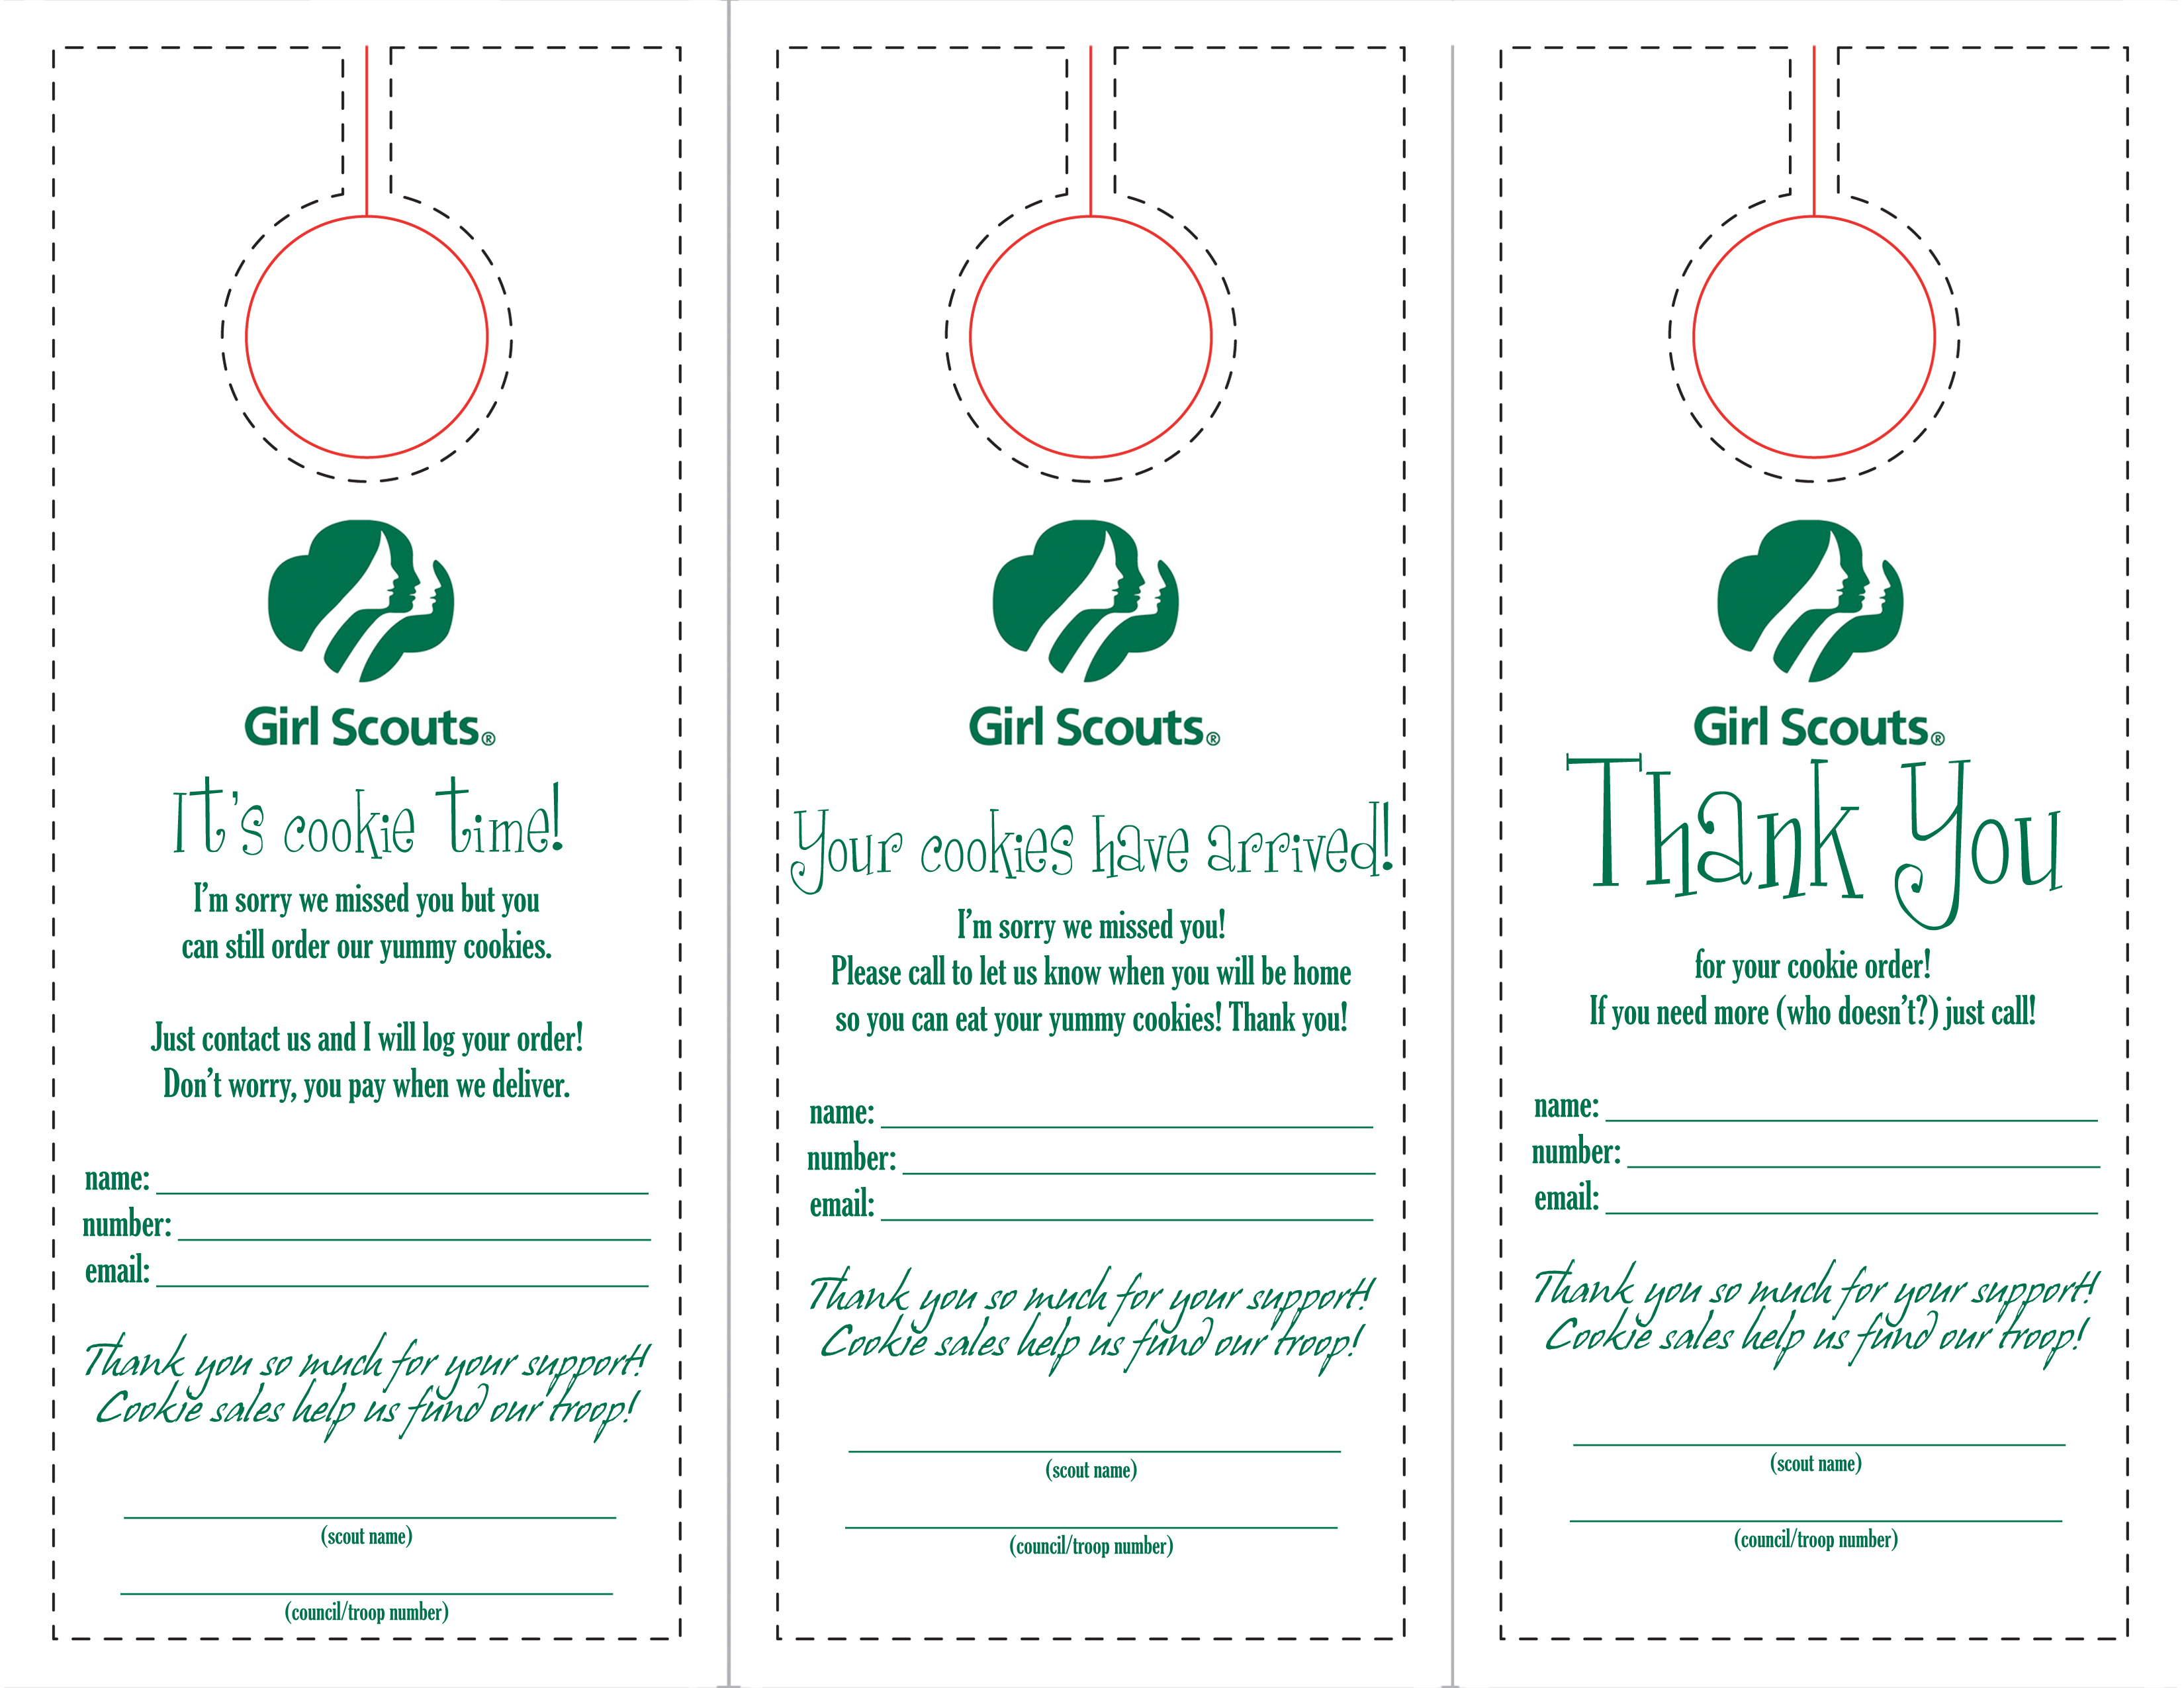 Free Scout Cookie Printable – Updated 2019! – Modified ... on pa girl scout cookie form, crazy about cookies order form, printable girl scout cookie form, girl scout cookie pick up form, girl scouts cookie permission form, scout permission slips, girl scout cookie receipt form, girl scout order form,